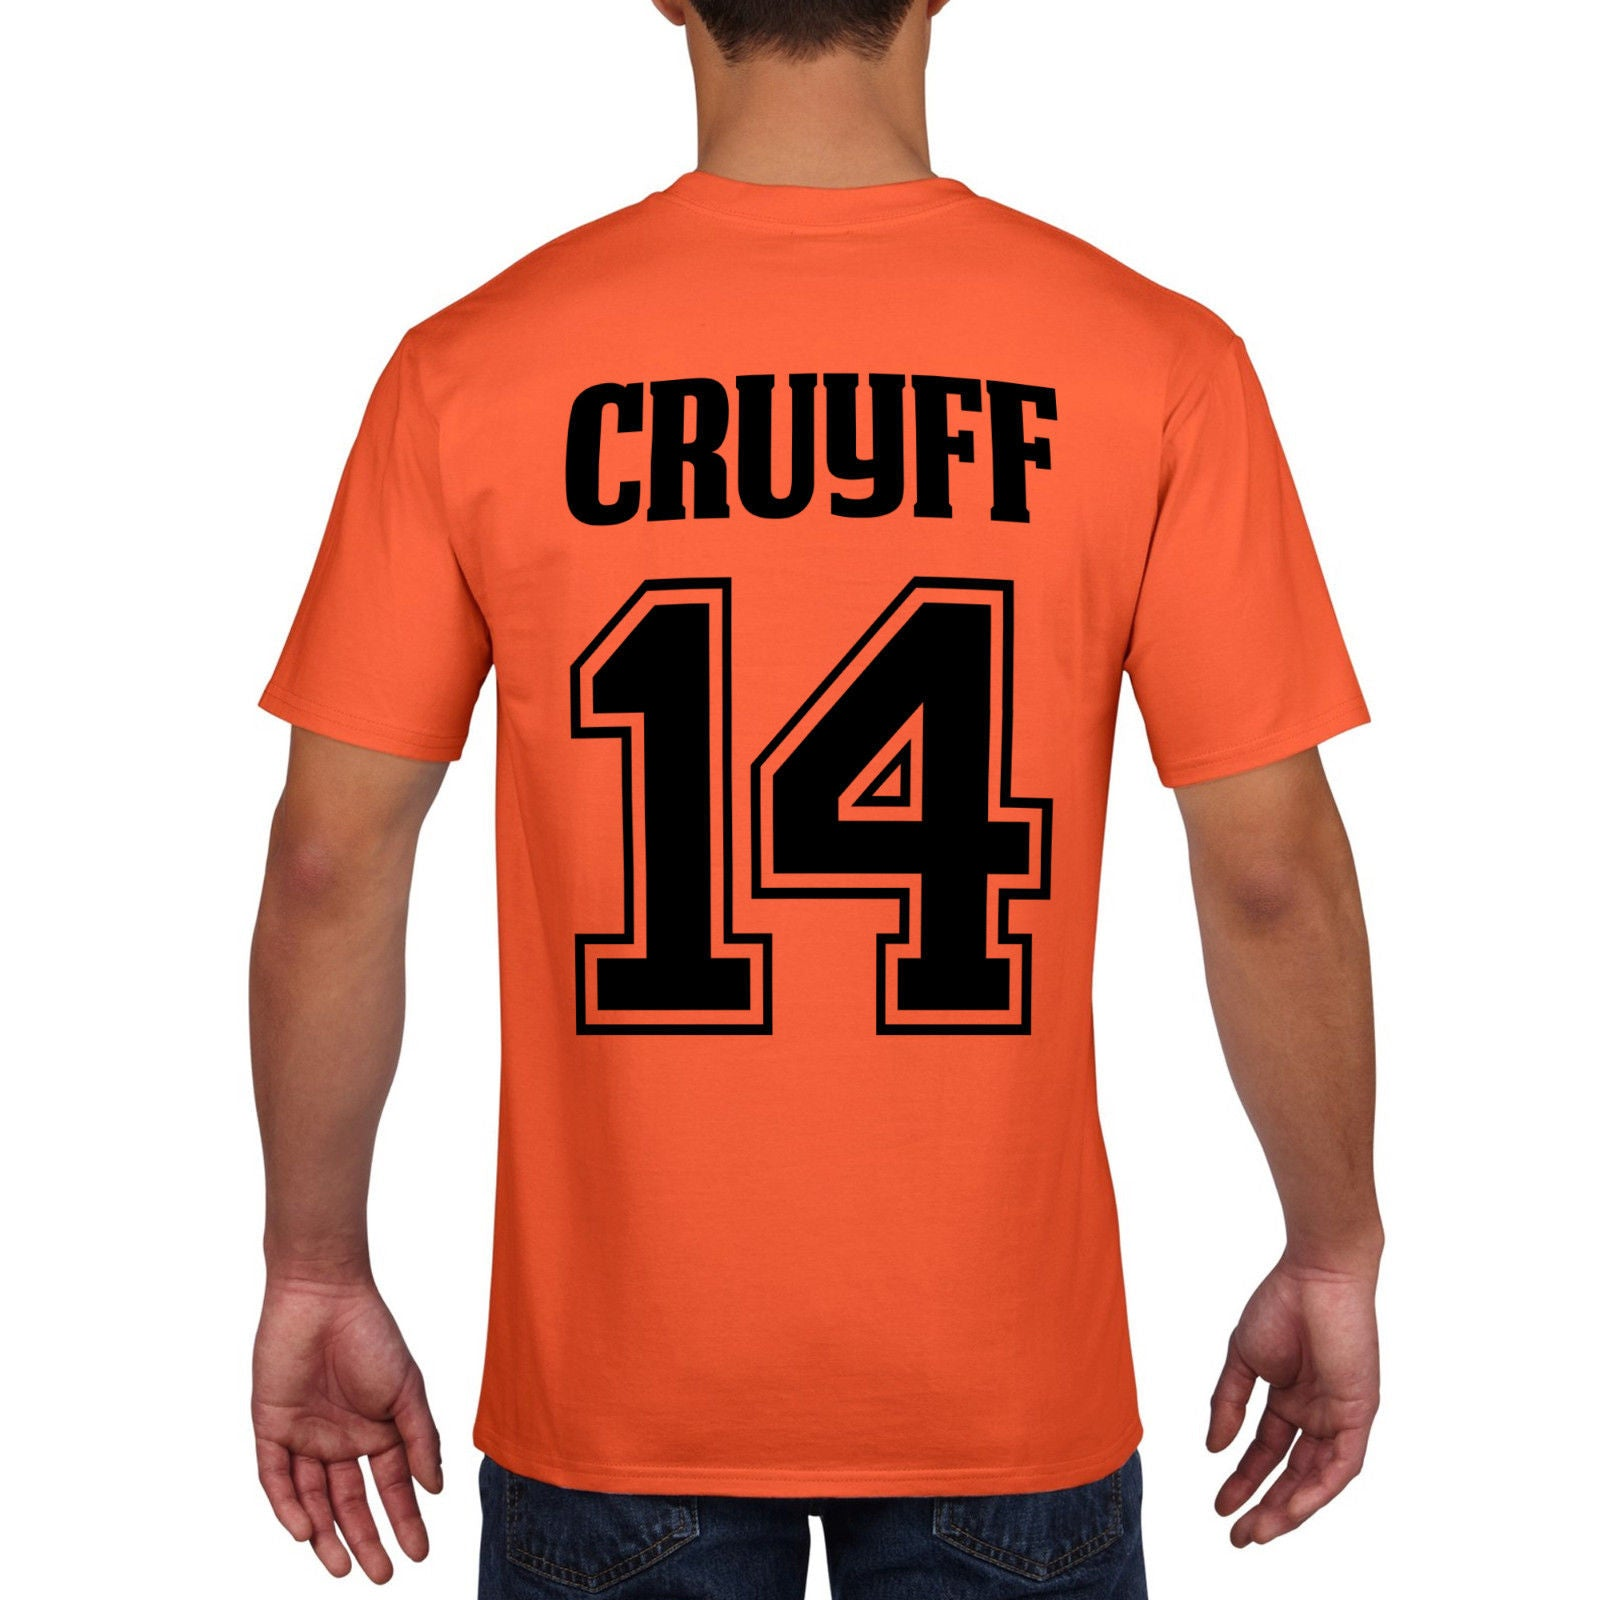 sale retailer 335d2 72141 Retro Netherlands Football Shirt Mens Boys Holland Cruyff Gullit Van Basten  761 - The Clothing Shed